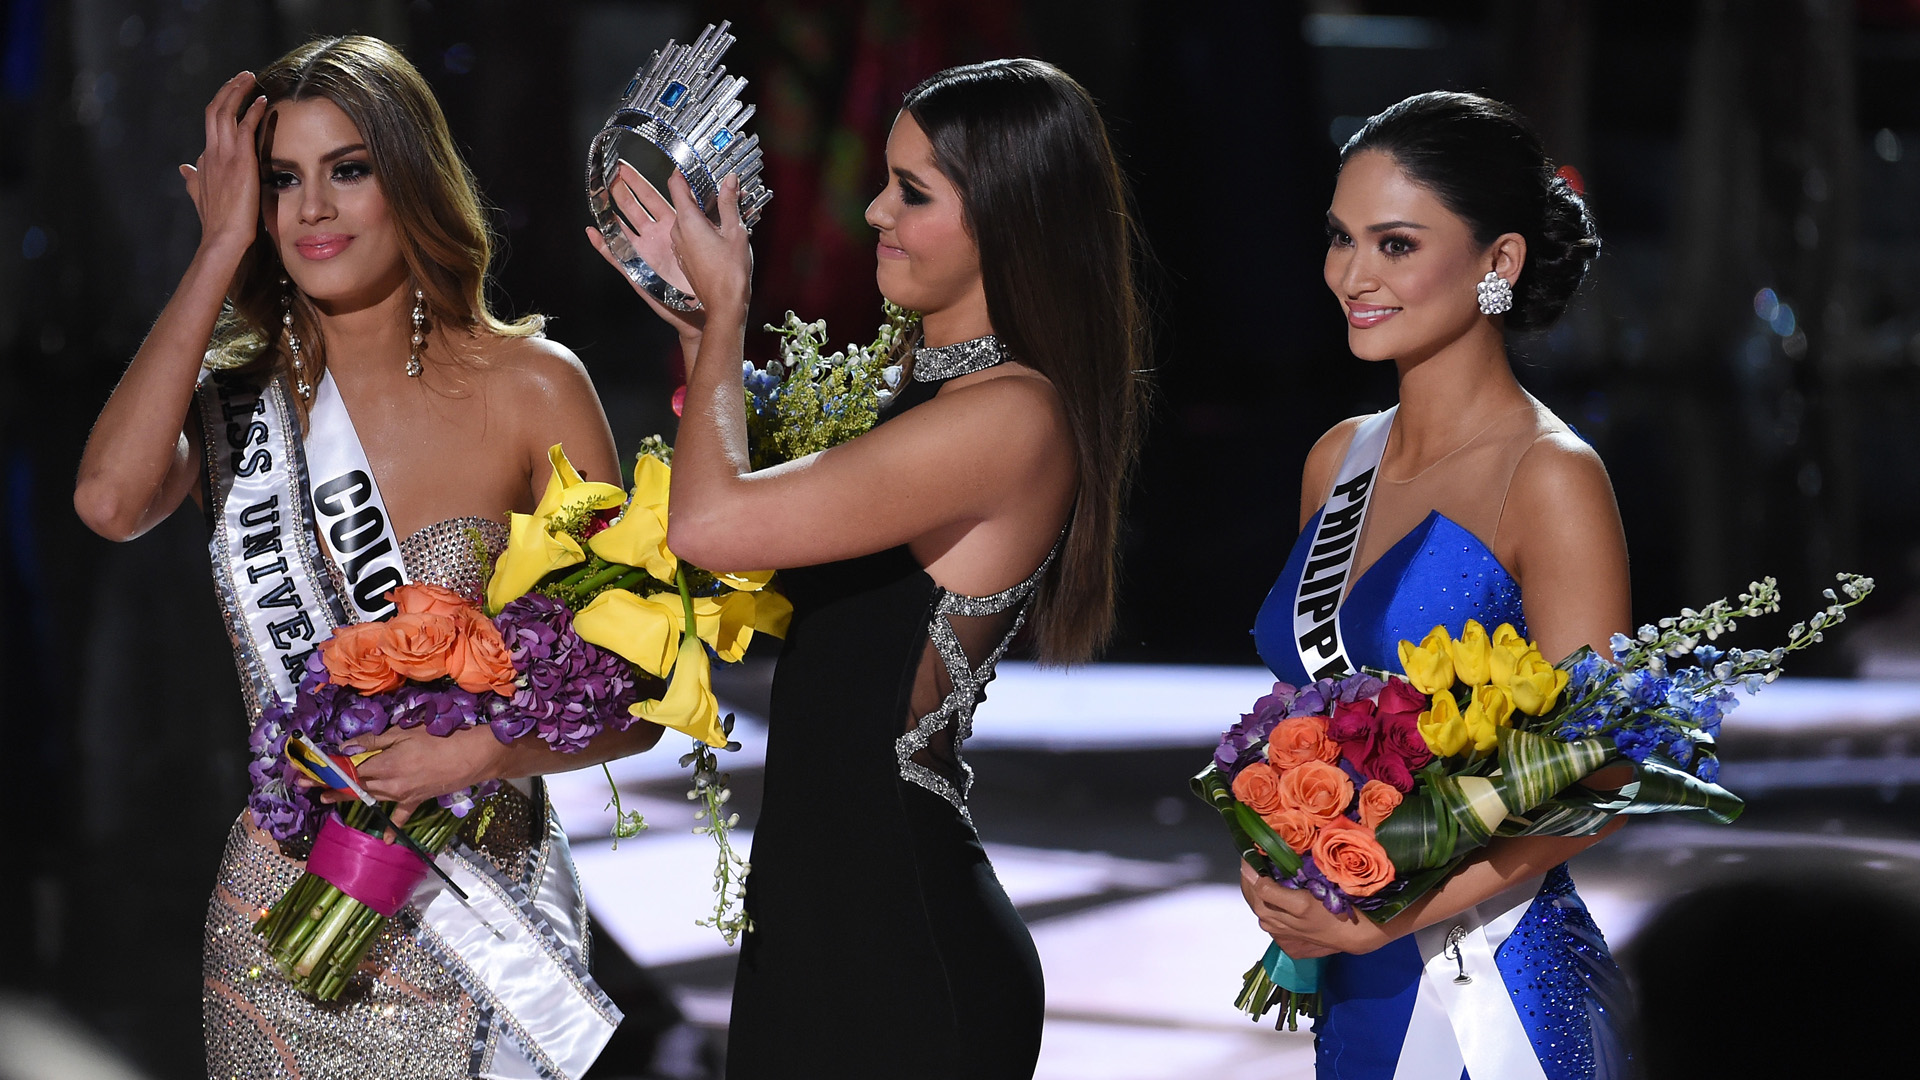 Watch Steve Harvey announce the wrong winner for Miss Universe